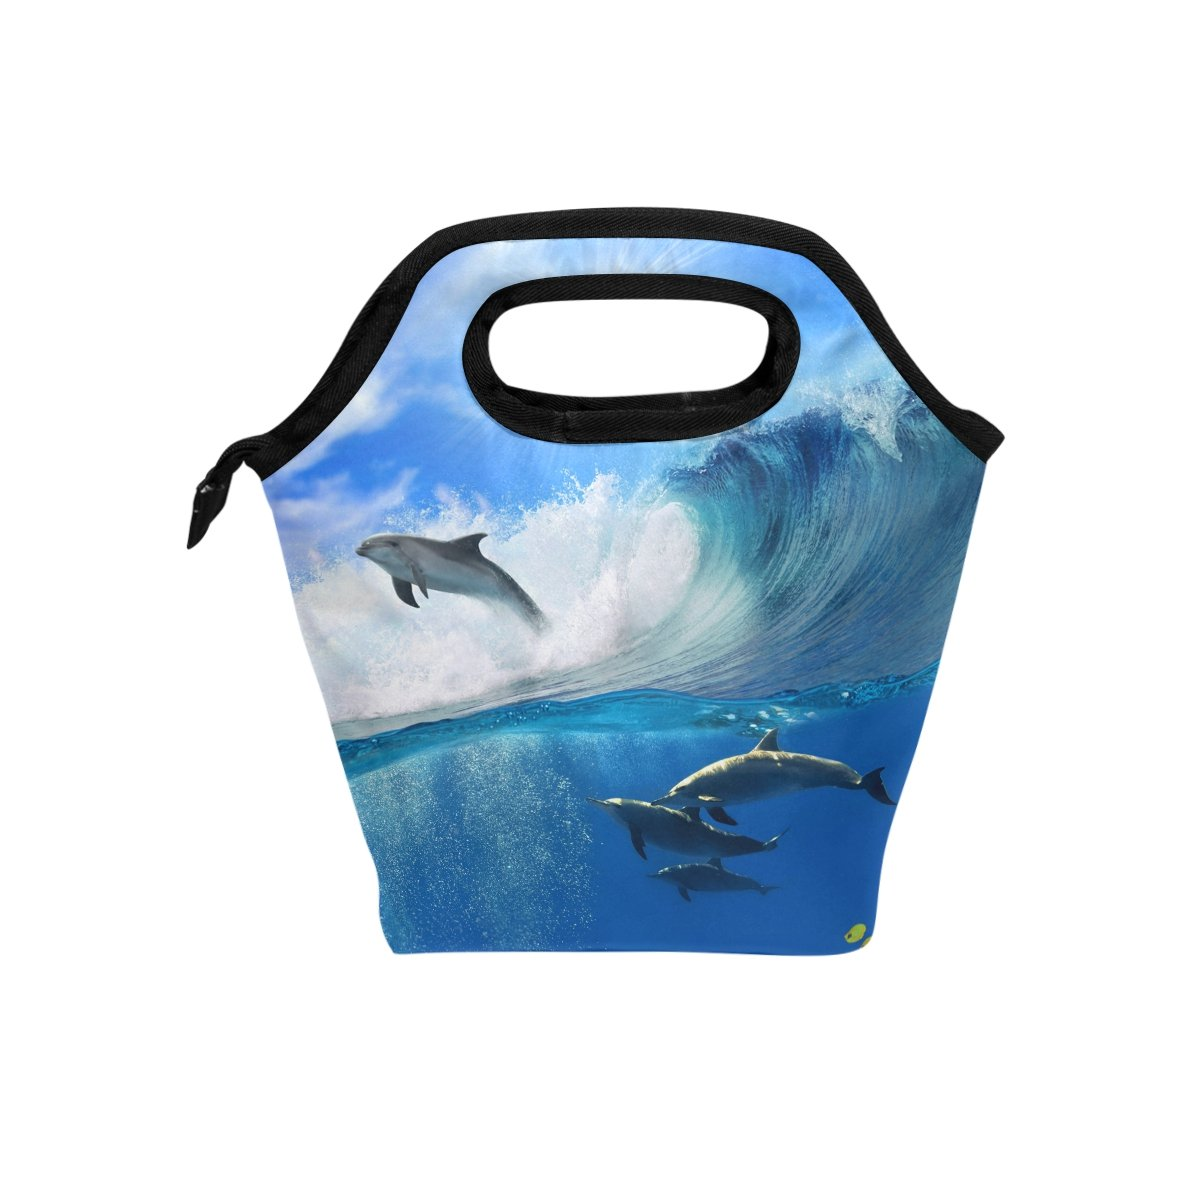 Bettken Lunch Bag Ocean Sea Animal Dolphin Insulated Reusable Lunch Box Portable Lunch Tote Bag Meal Bag Ice Pack for Kids Boys Girls Adult Men Women